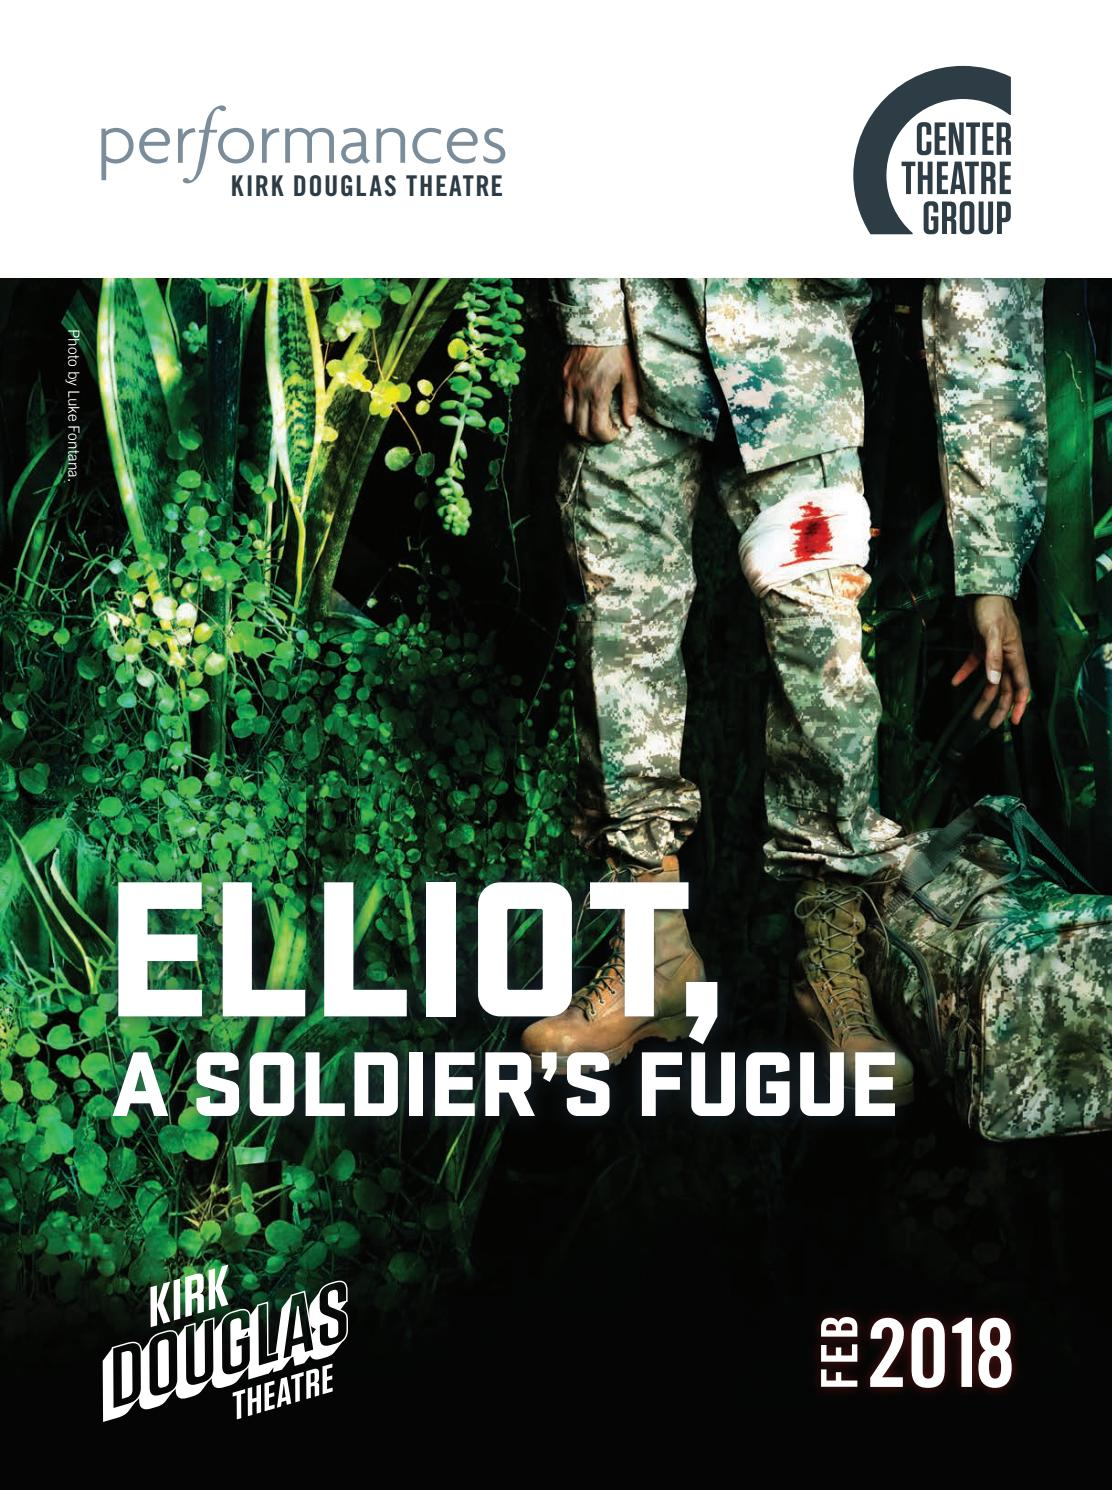 Elliot, A Soldier's Fugue at Center Theatre Group, Performances magazine  February 2018